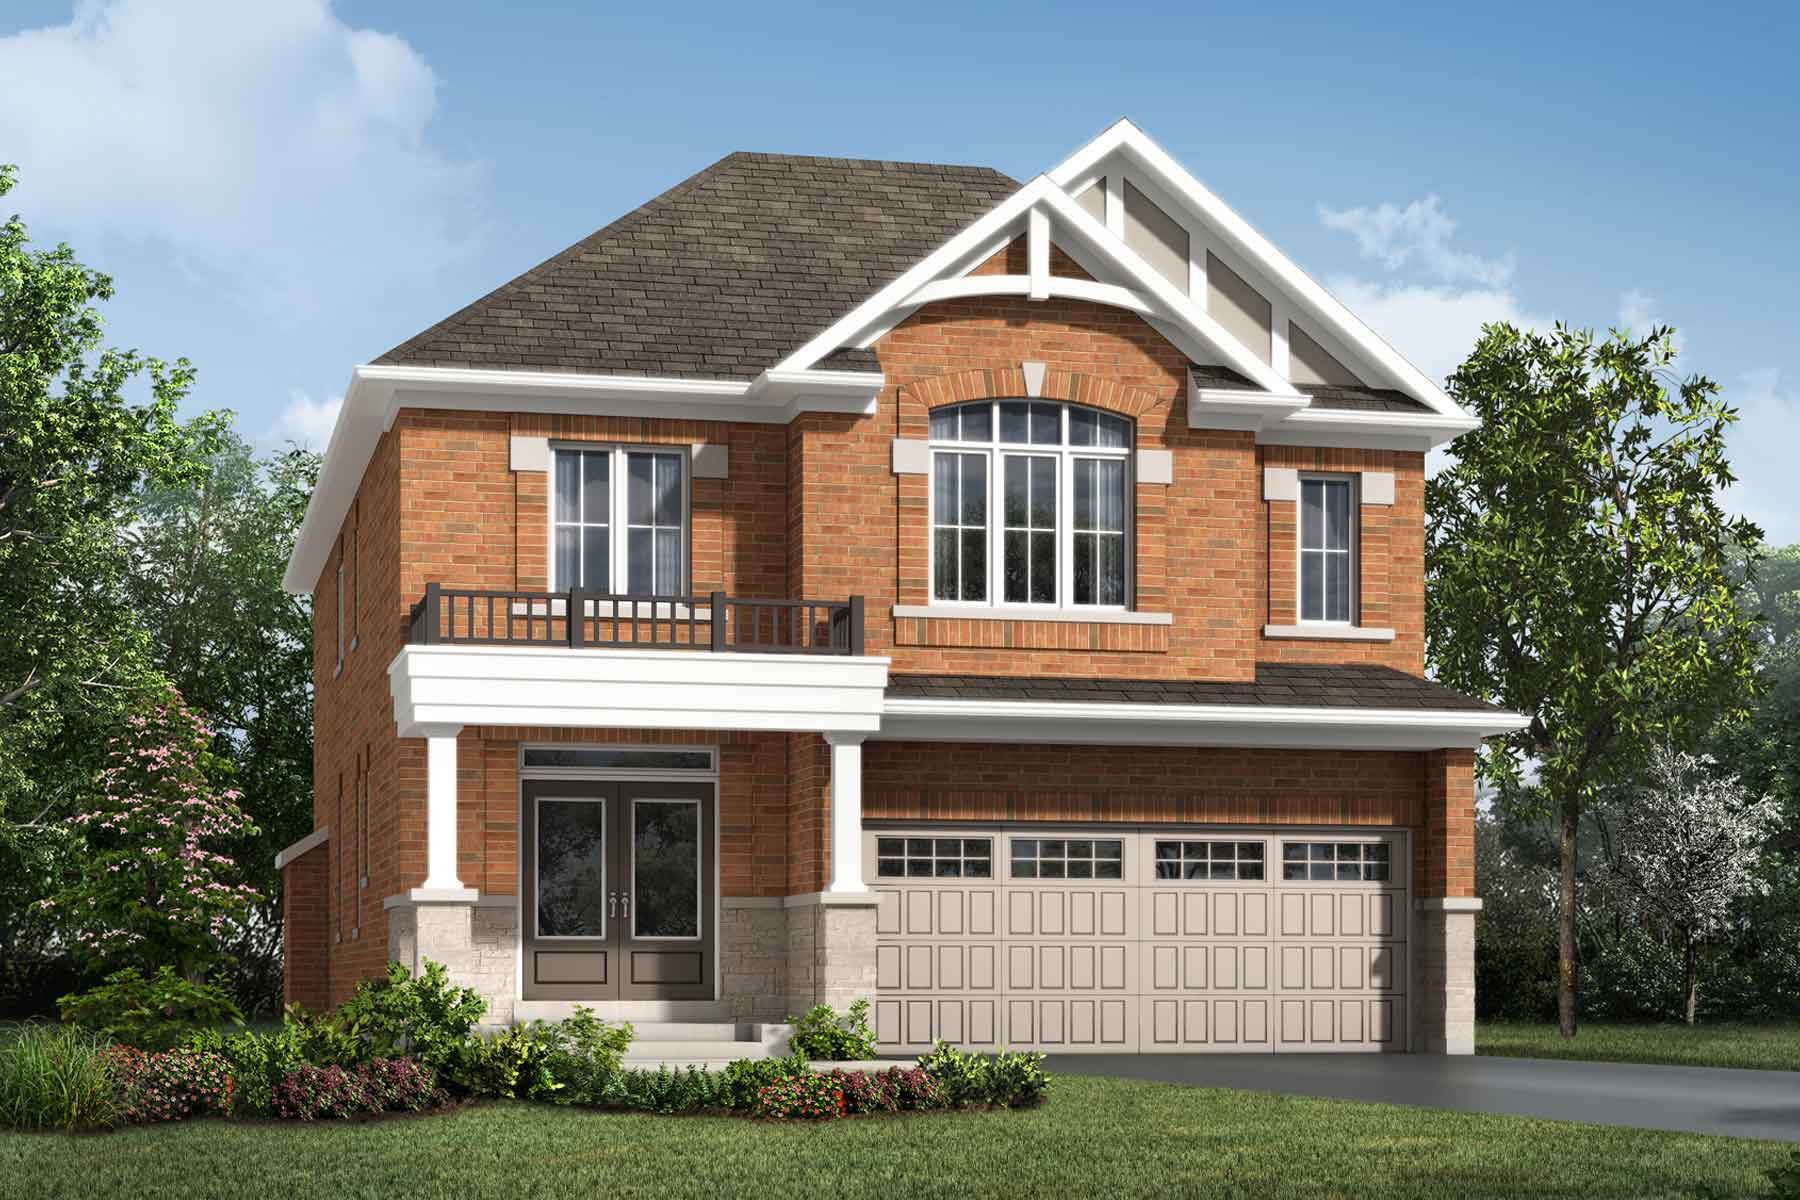 Lawson Plan ElevationTraditional_Soleil_Lawson_Main at Soleil in Milton Ontario by Mattamy Homes